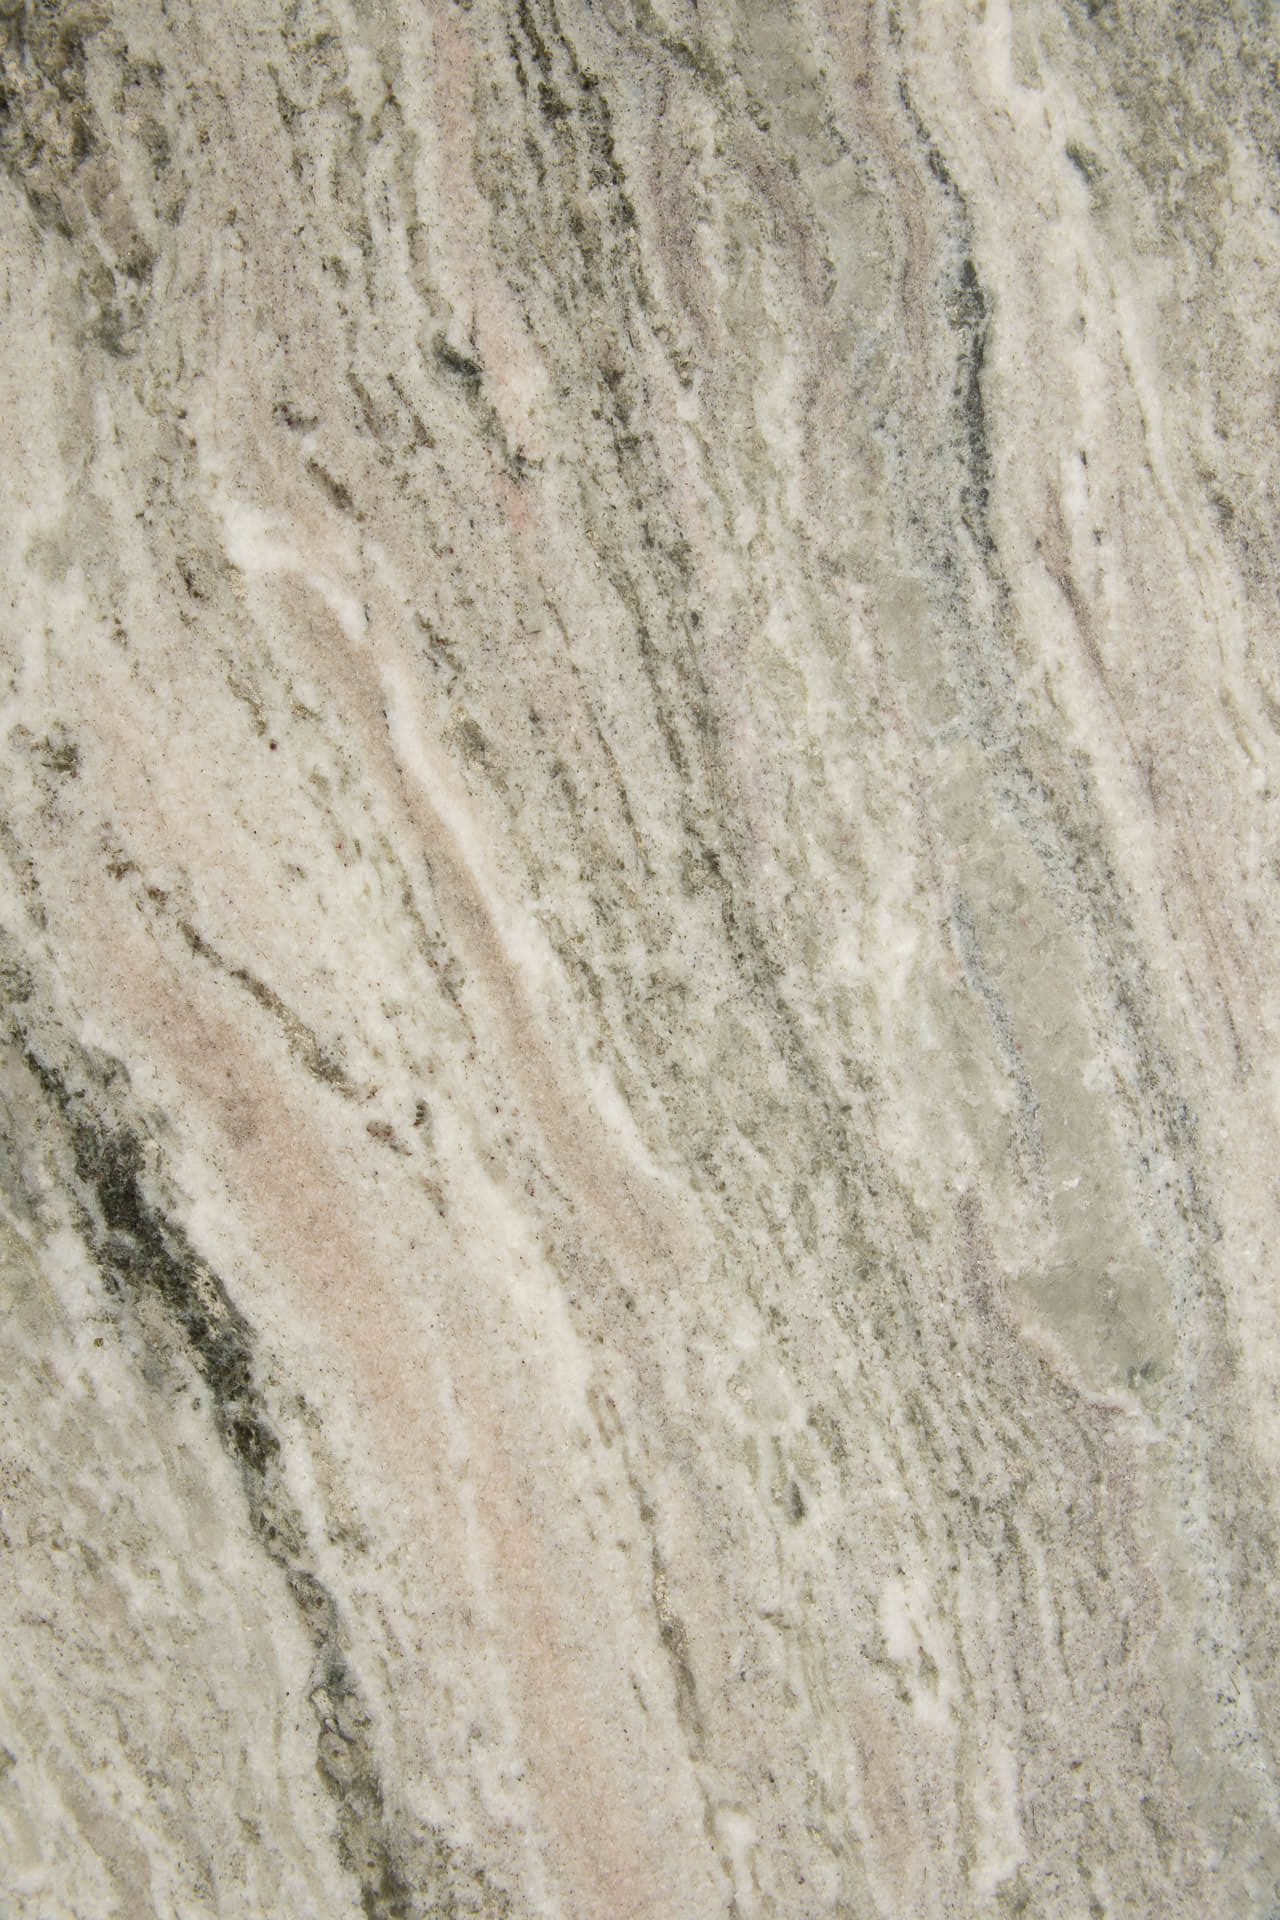 fantasy brown 2 cu countertop - by Magnolia Countertops. A Countertop fabricator of Granite Countertops, Marble Countertops, and Quartz Countertops in Cookeville and Crossville TN.